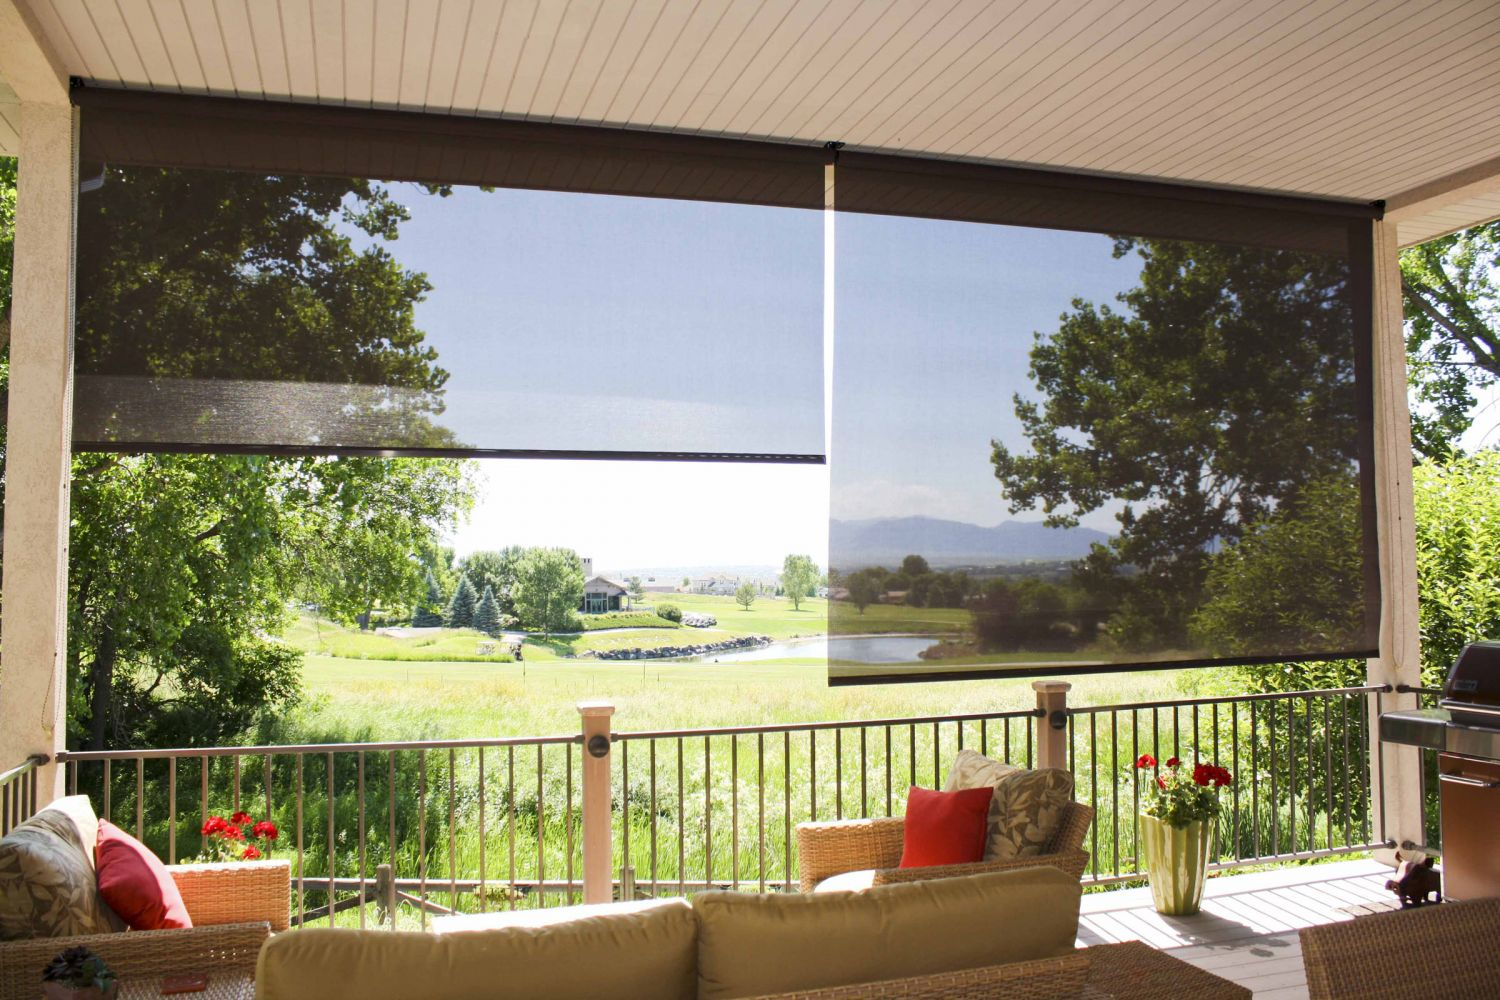 Outdoor Sun Blinds Insolroll Oasis 2600 Patio Sun Shades Innovative Openings